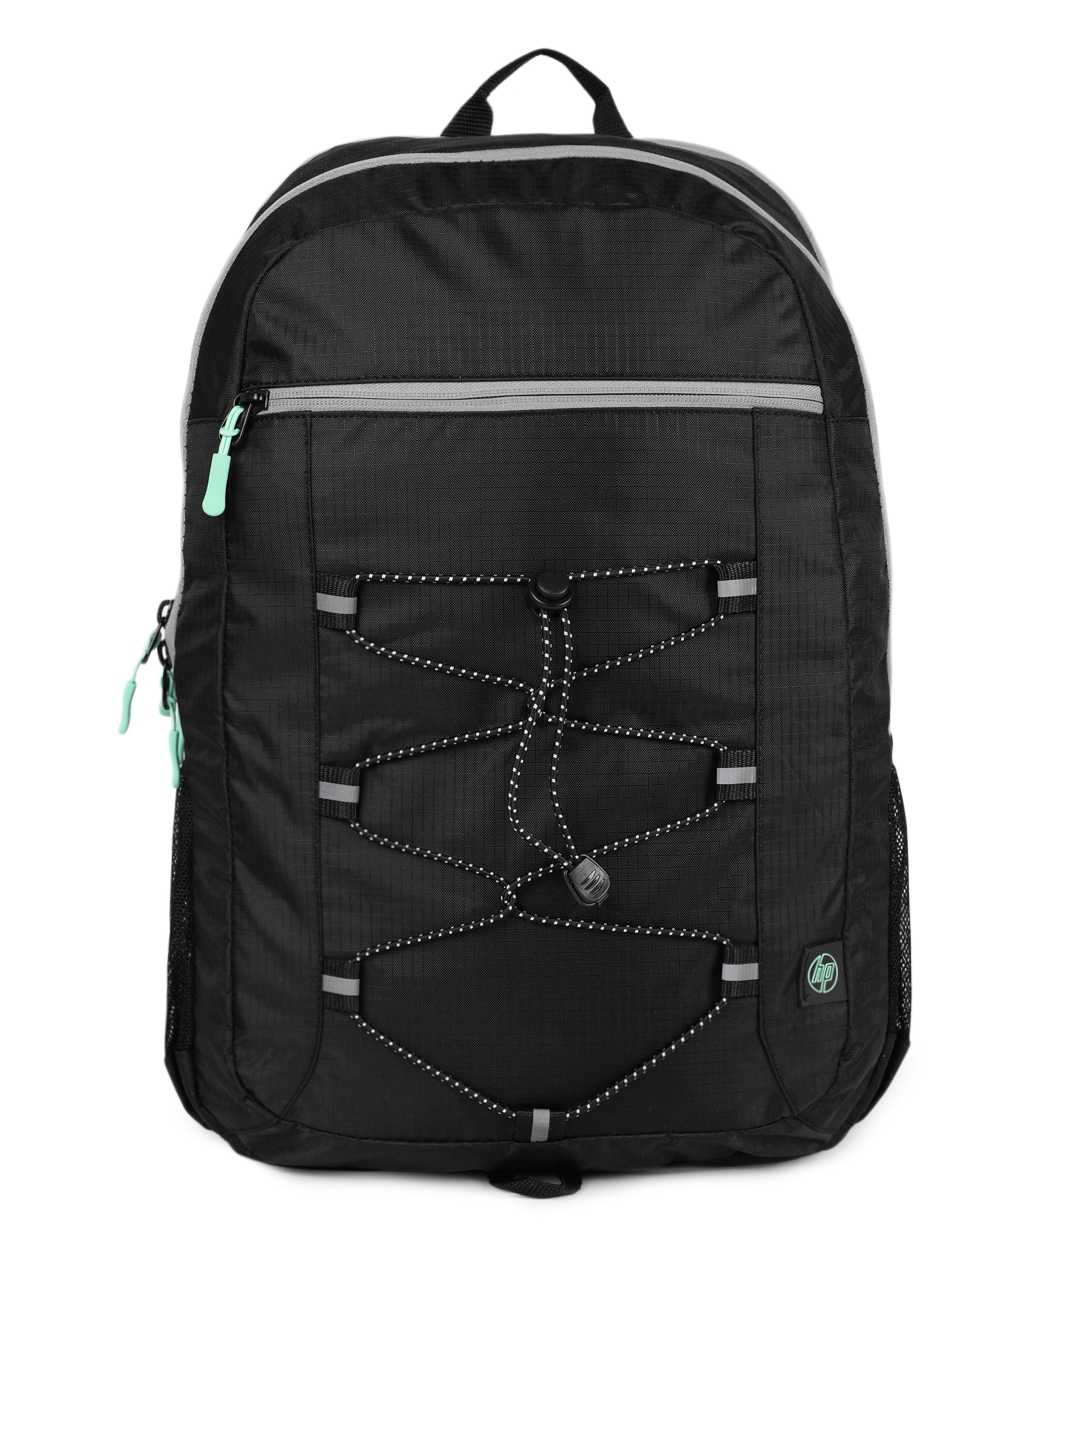 HP Unisex Black Solid 15.6 Active Laptop Backpack